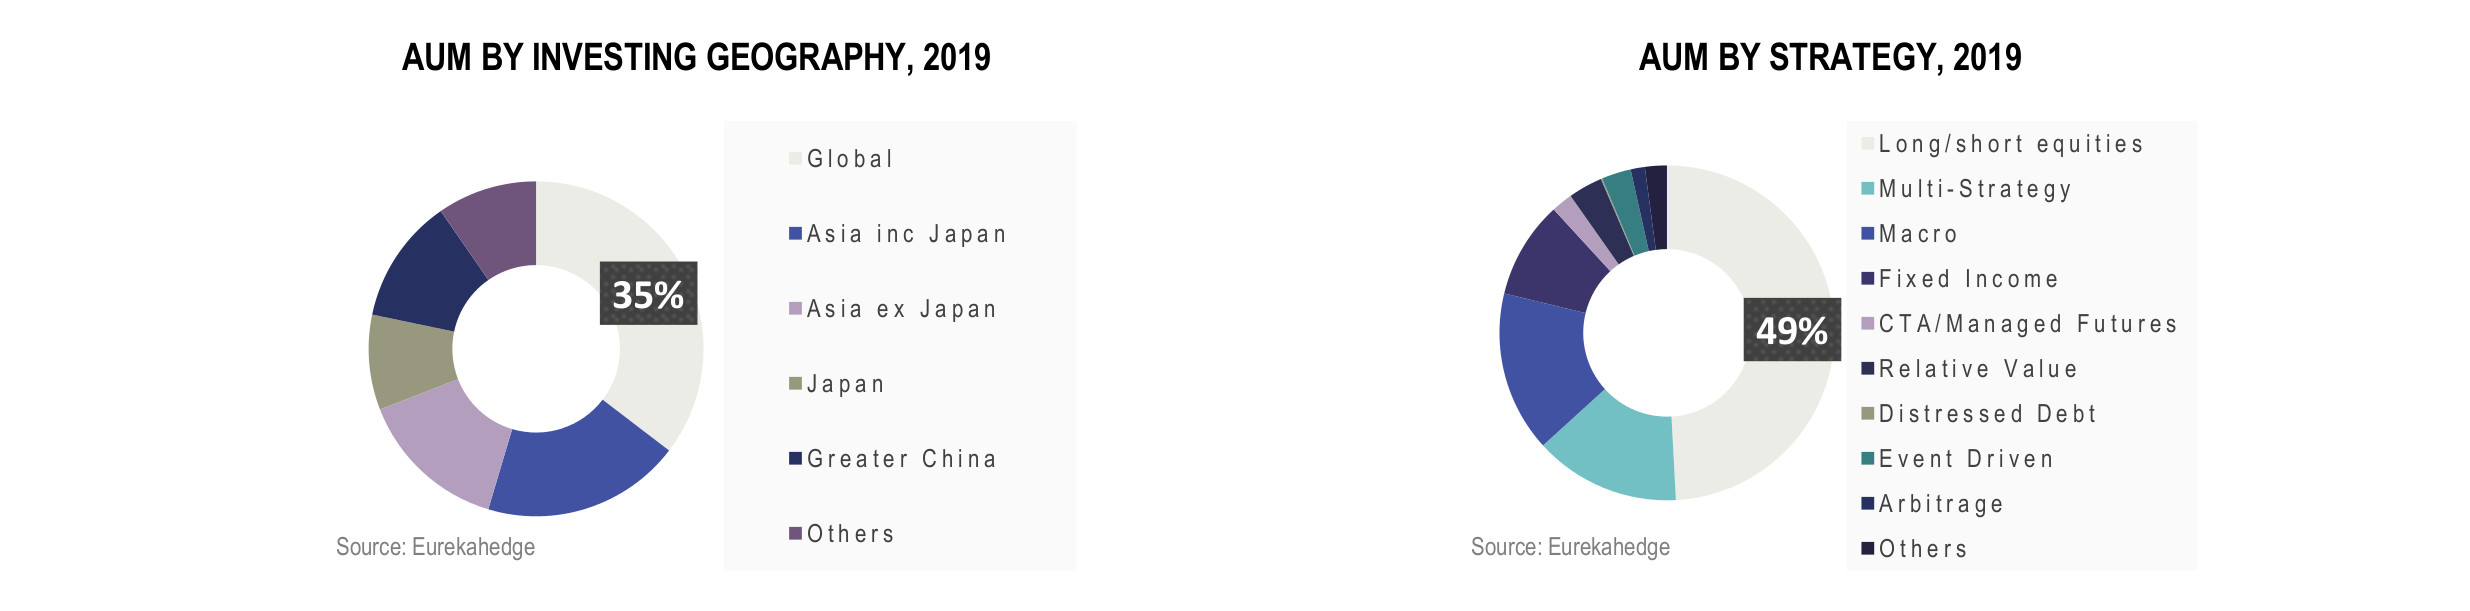 Asian Hedge Funds Infographic January 2020 - AUM by investing geography and number of funds by domicile